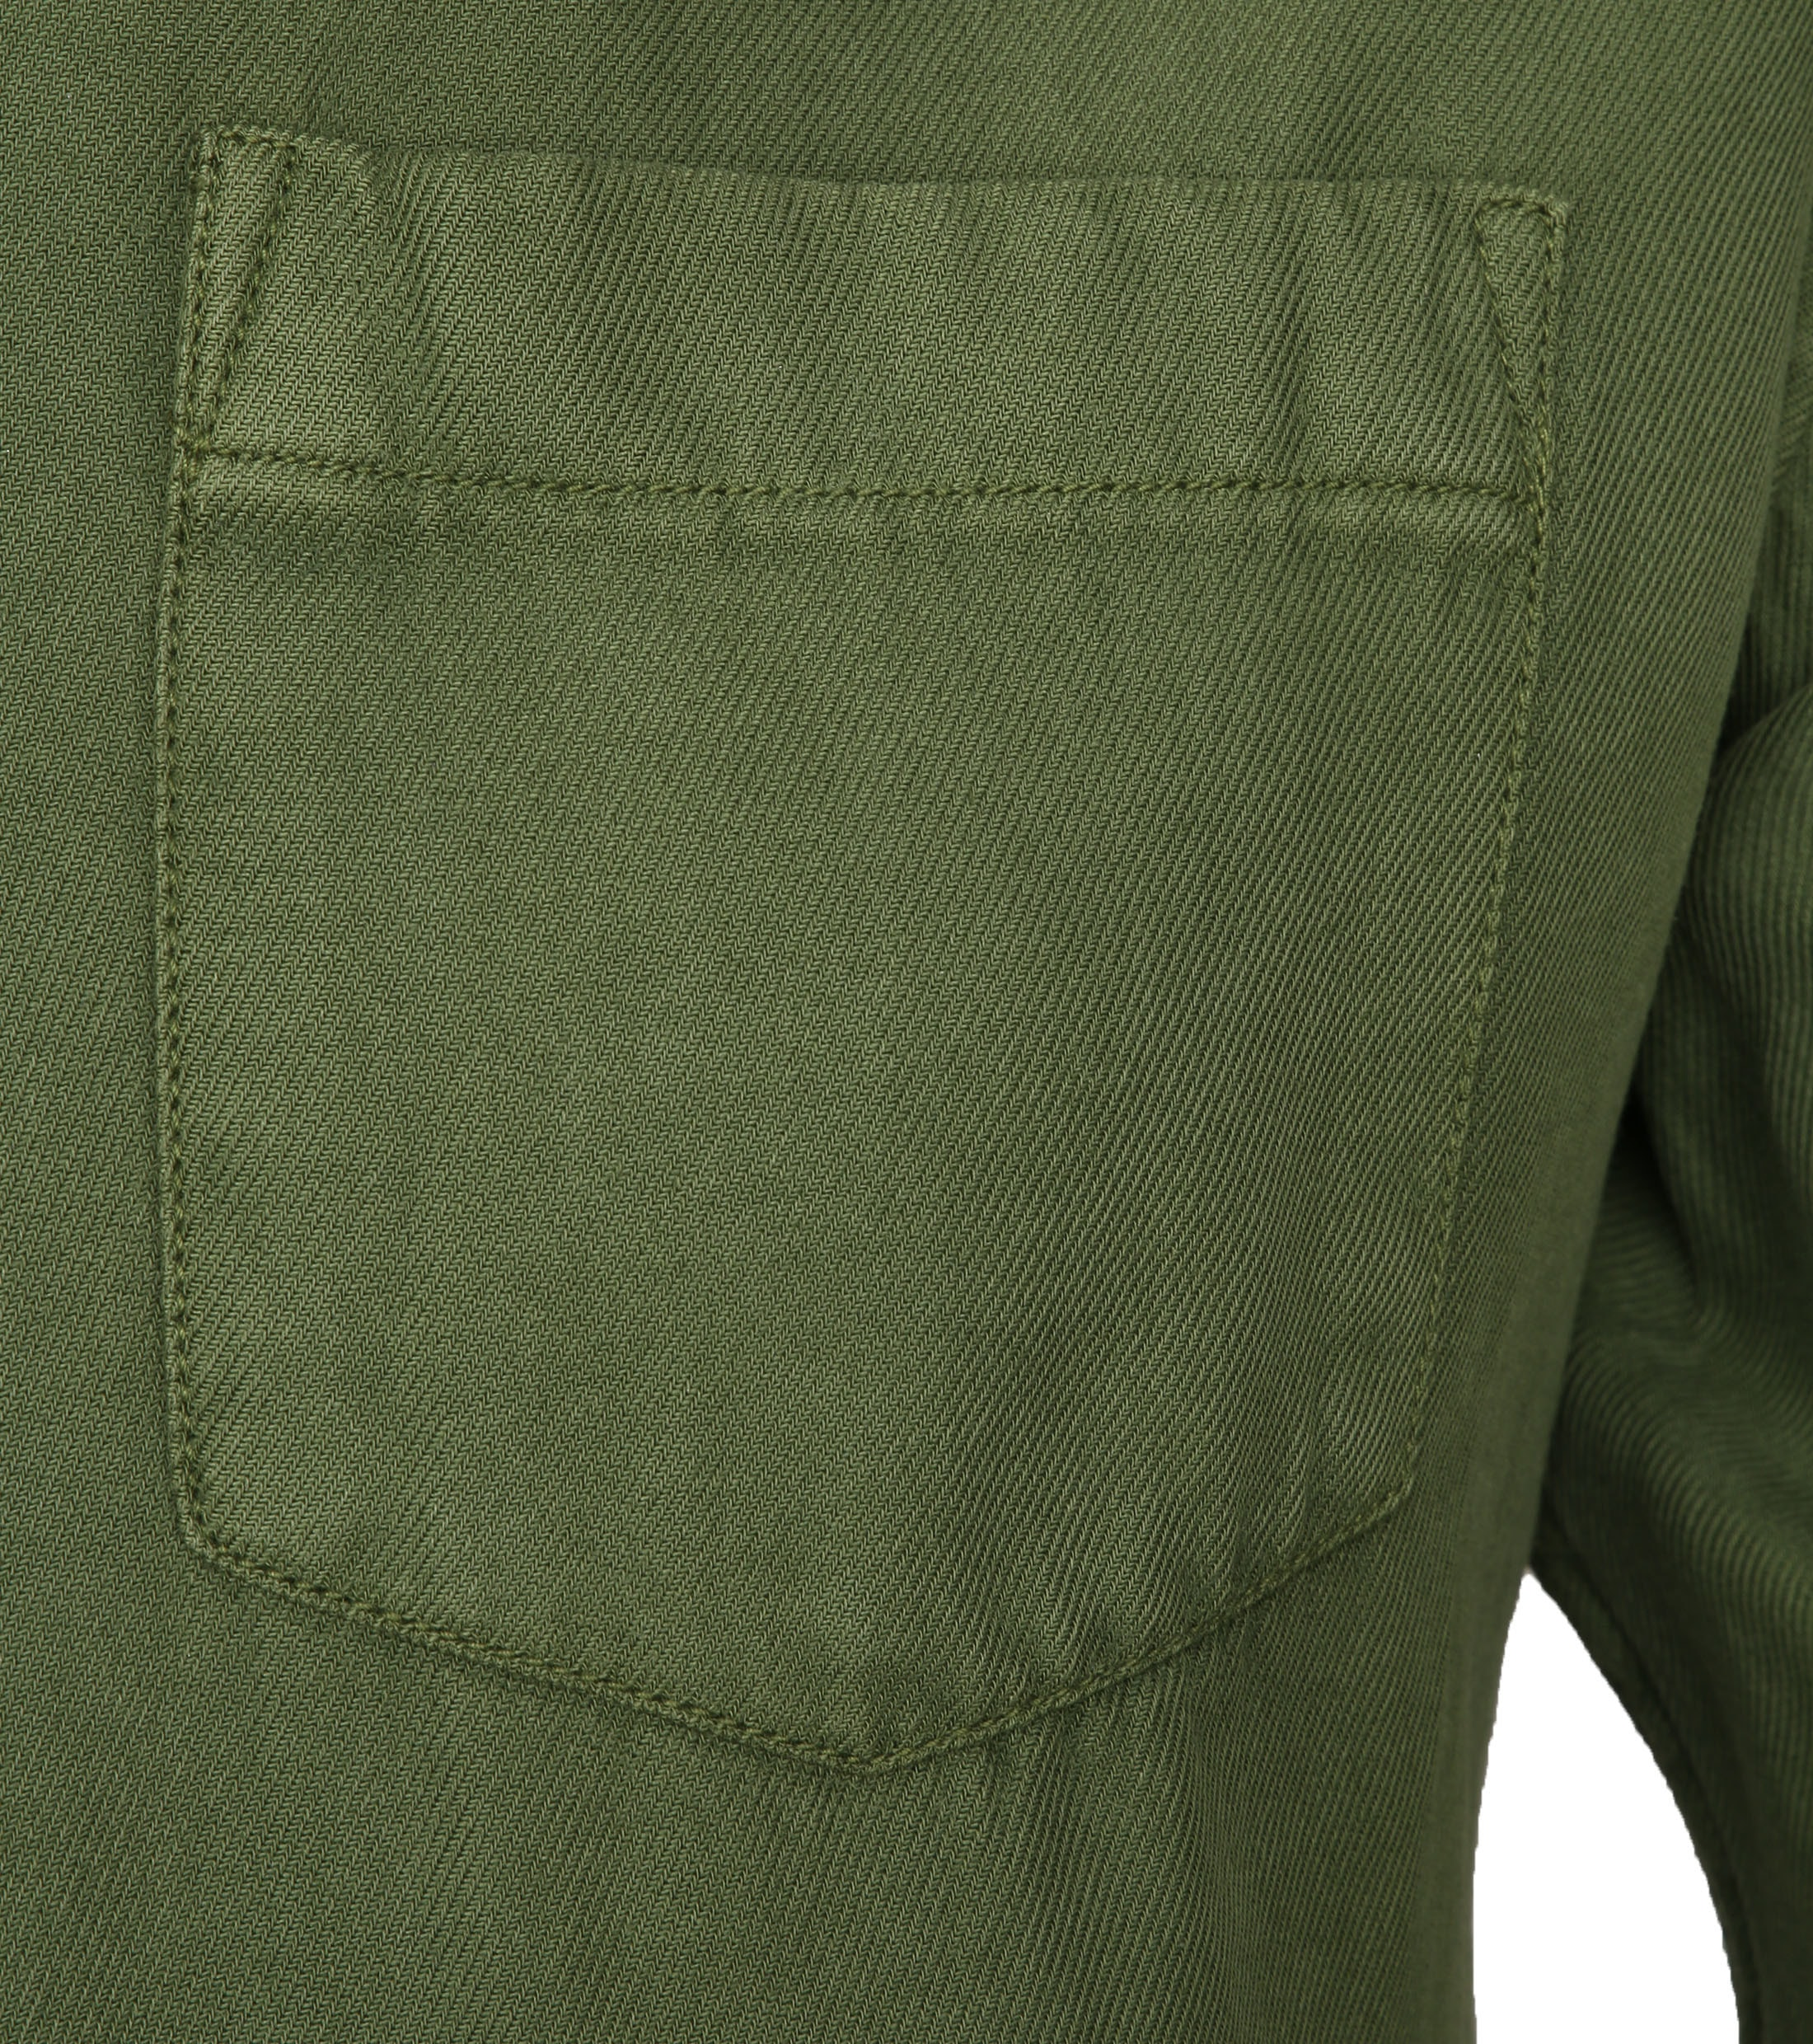 KnowledgeCotton Apparel Overhemd Twill Groen foto 2